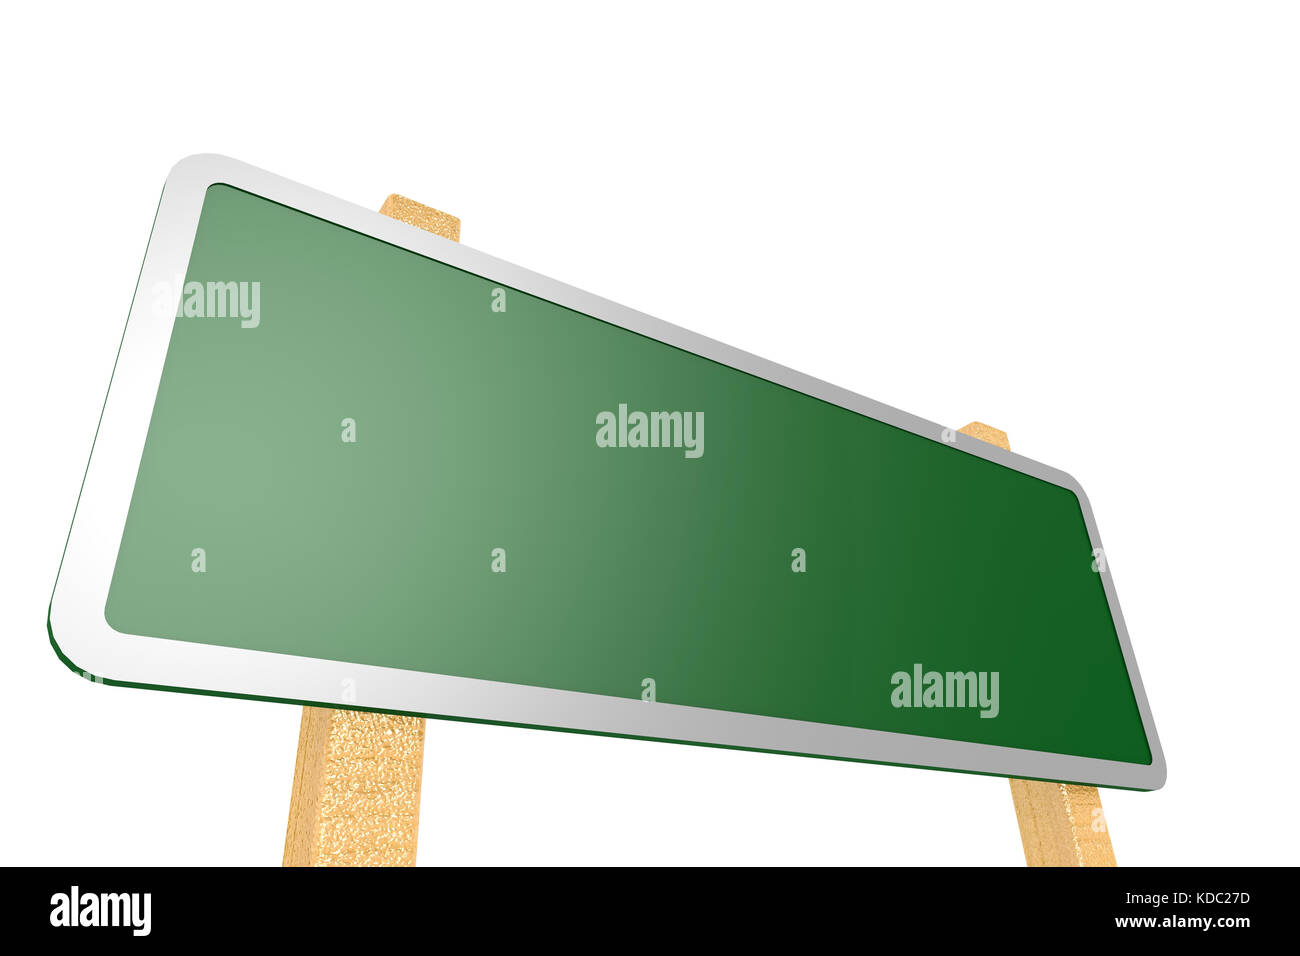 Green road sign with wood stand image , 3D rendering - Stock Image